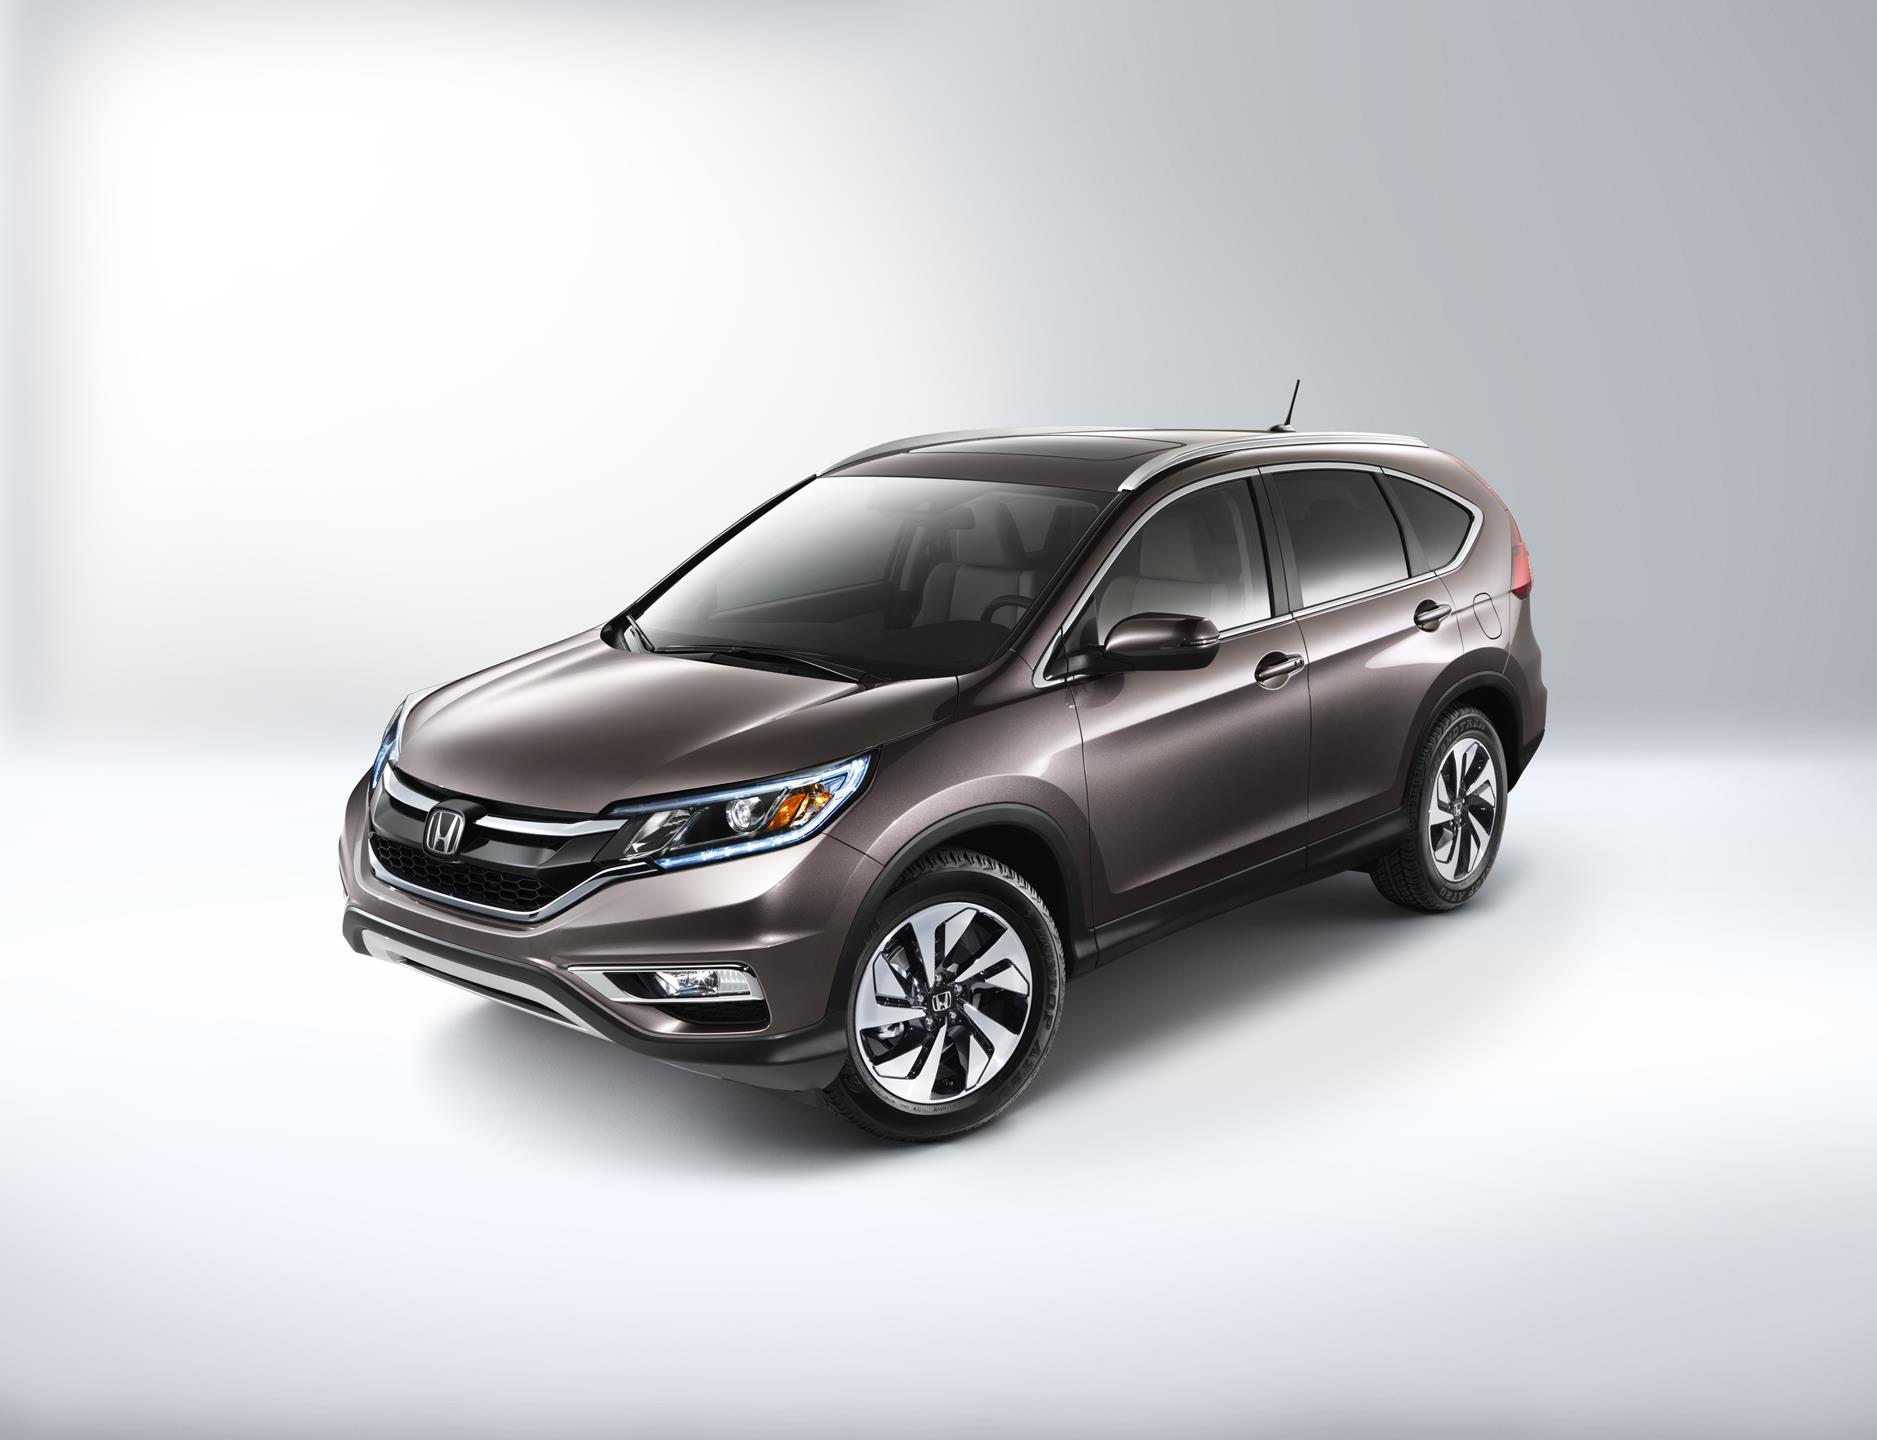 2016 honda cr v technical specifications and data engine. Black Bedroom Furniture Sets. Home Design Ideas